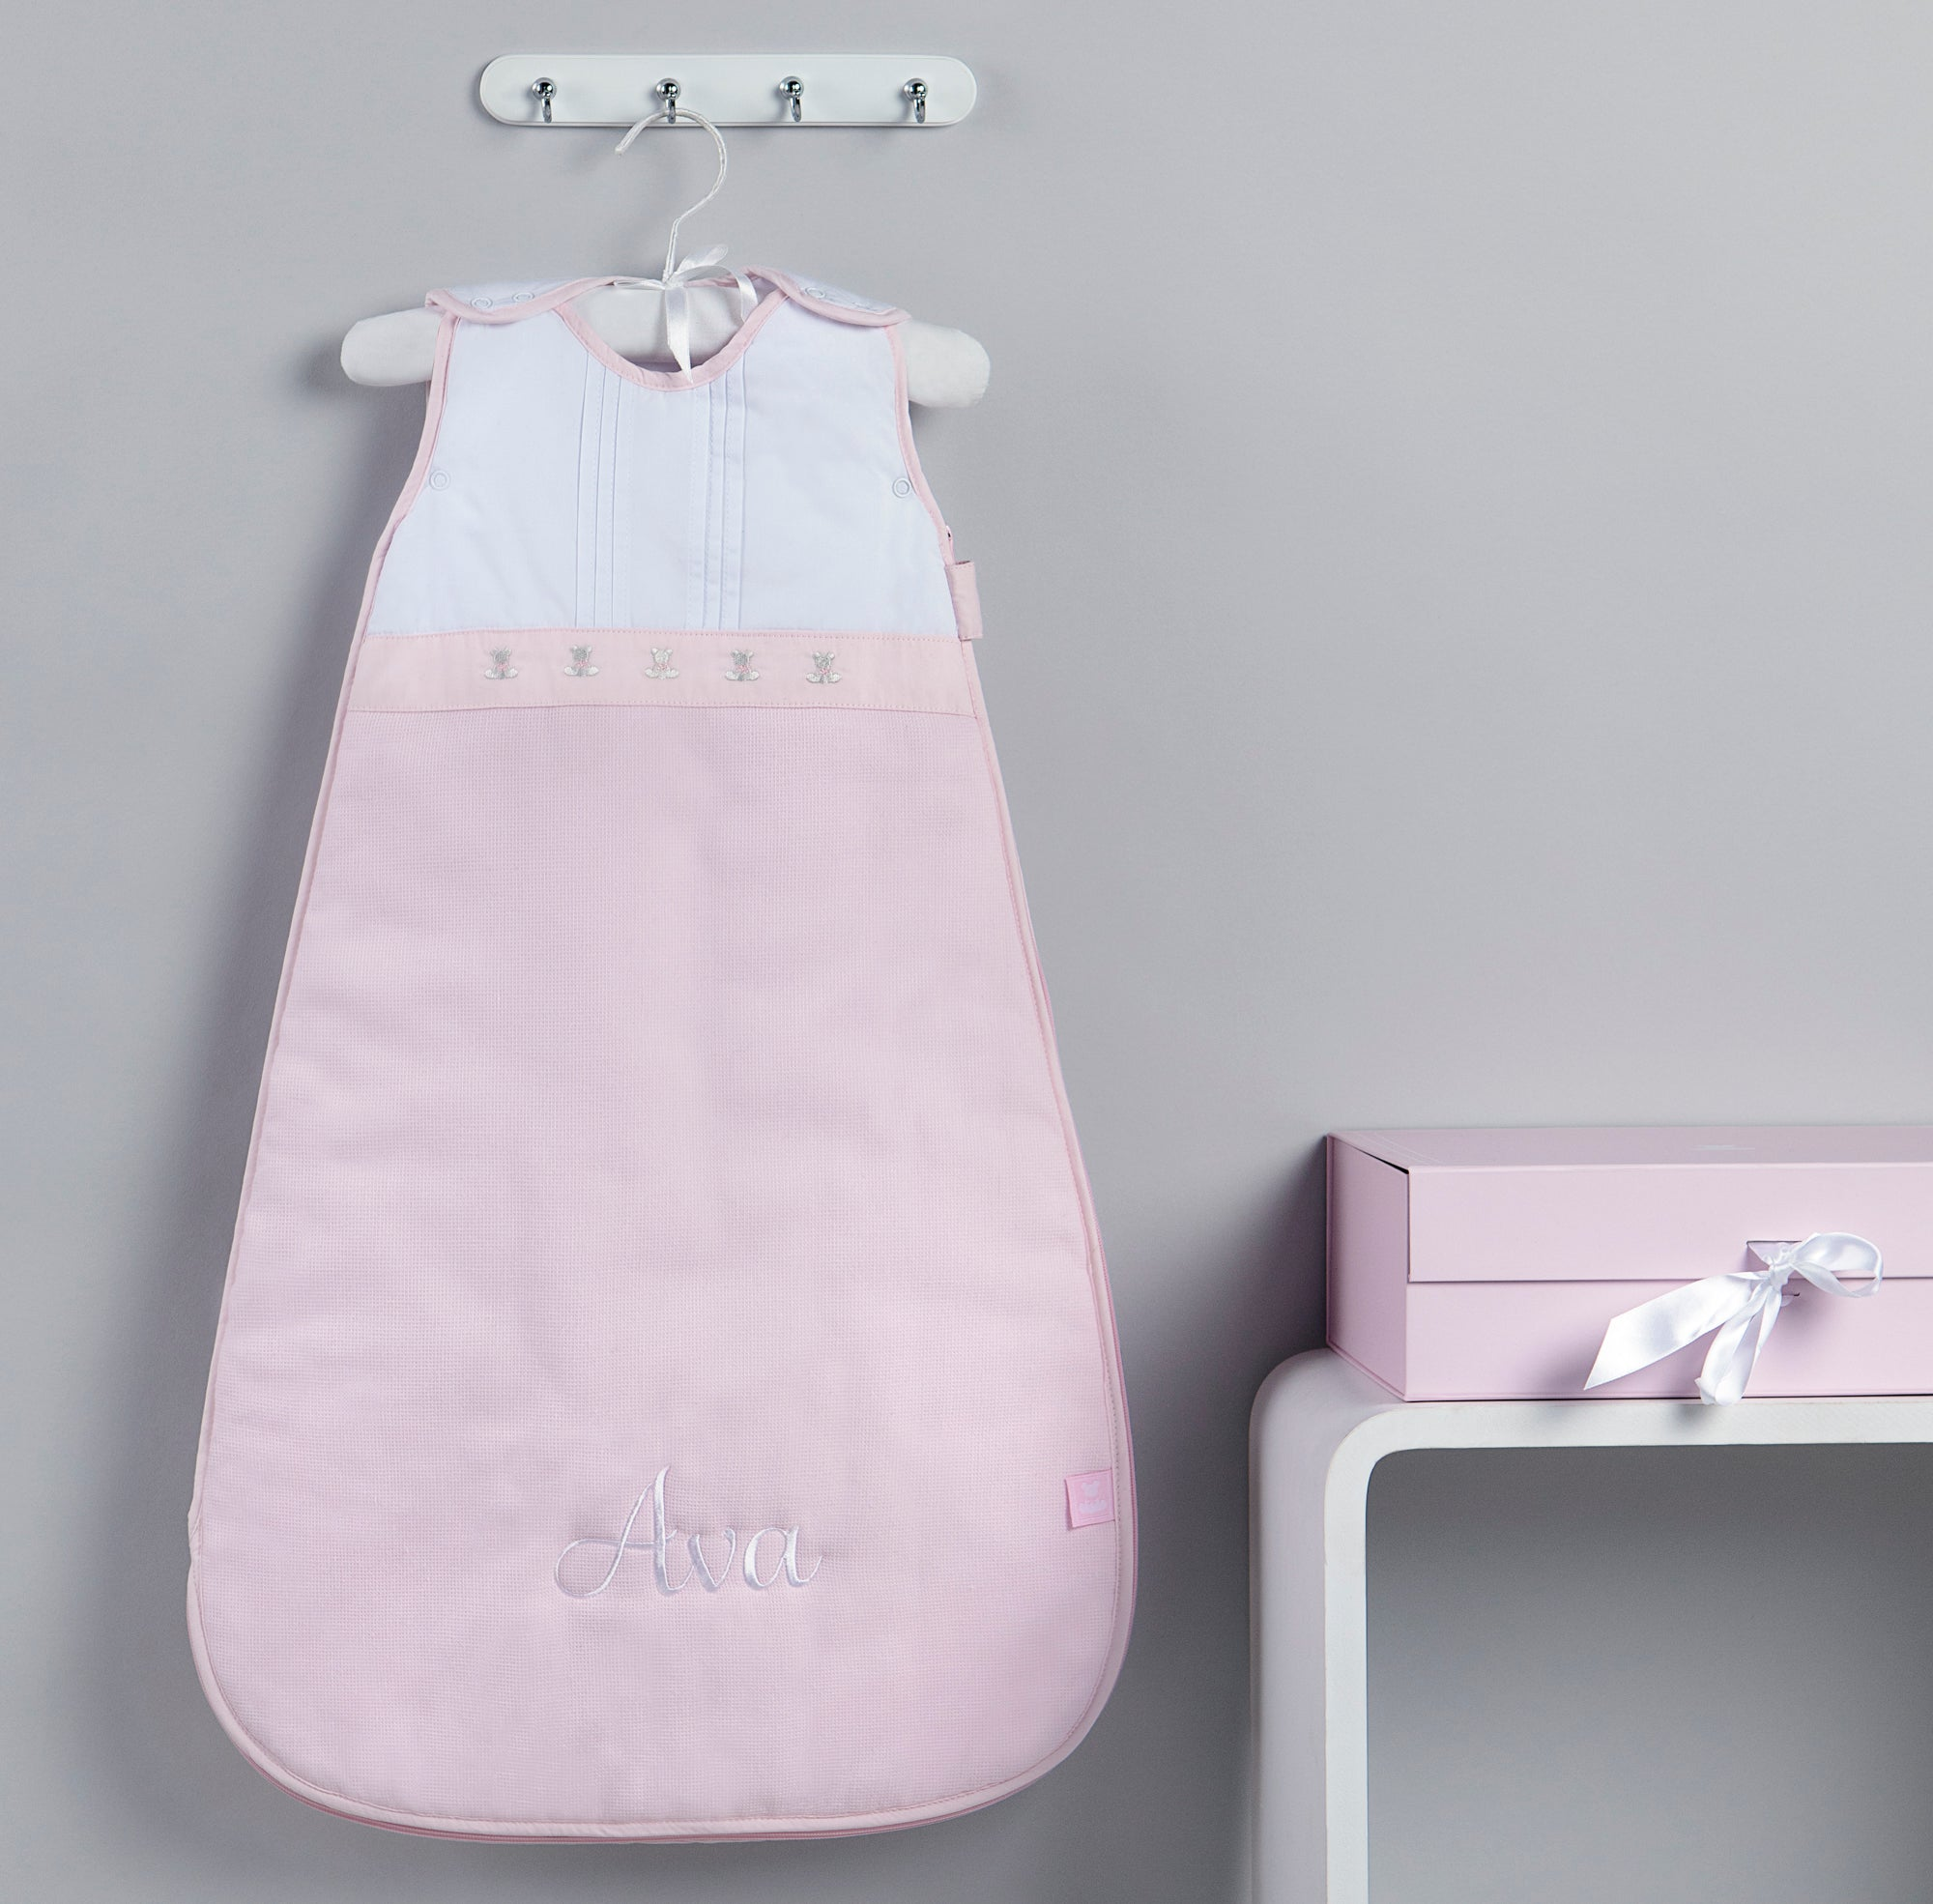 Signature Baby Sleeping Bag - Pink -Personalised Baby Gift